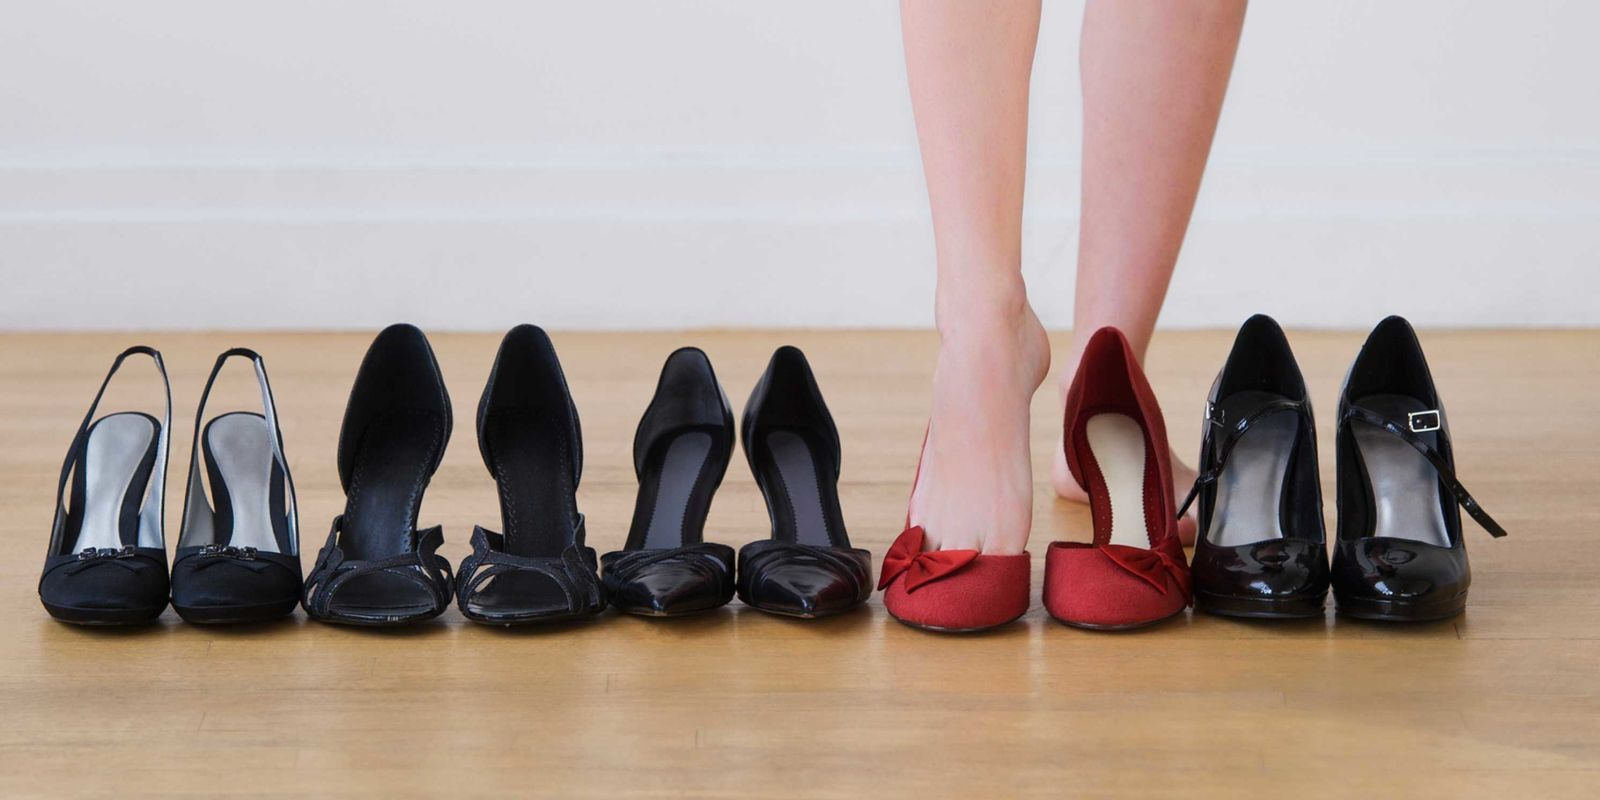 44+ What is the most comfortable heels information